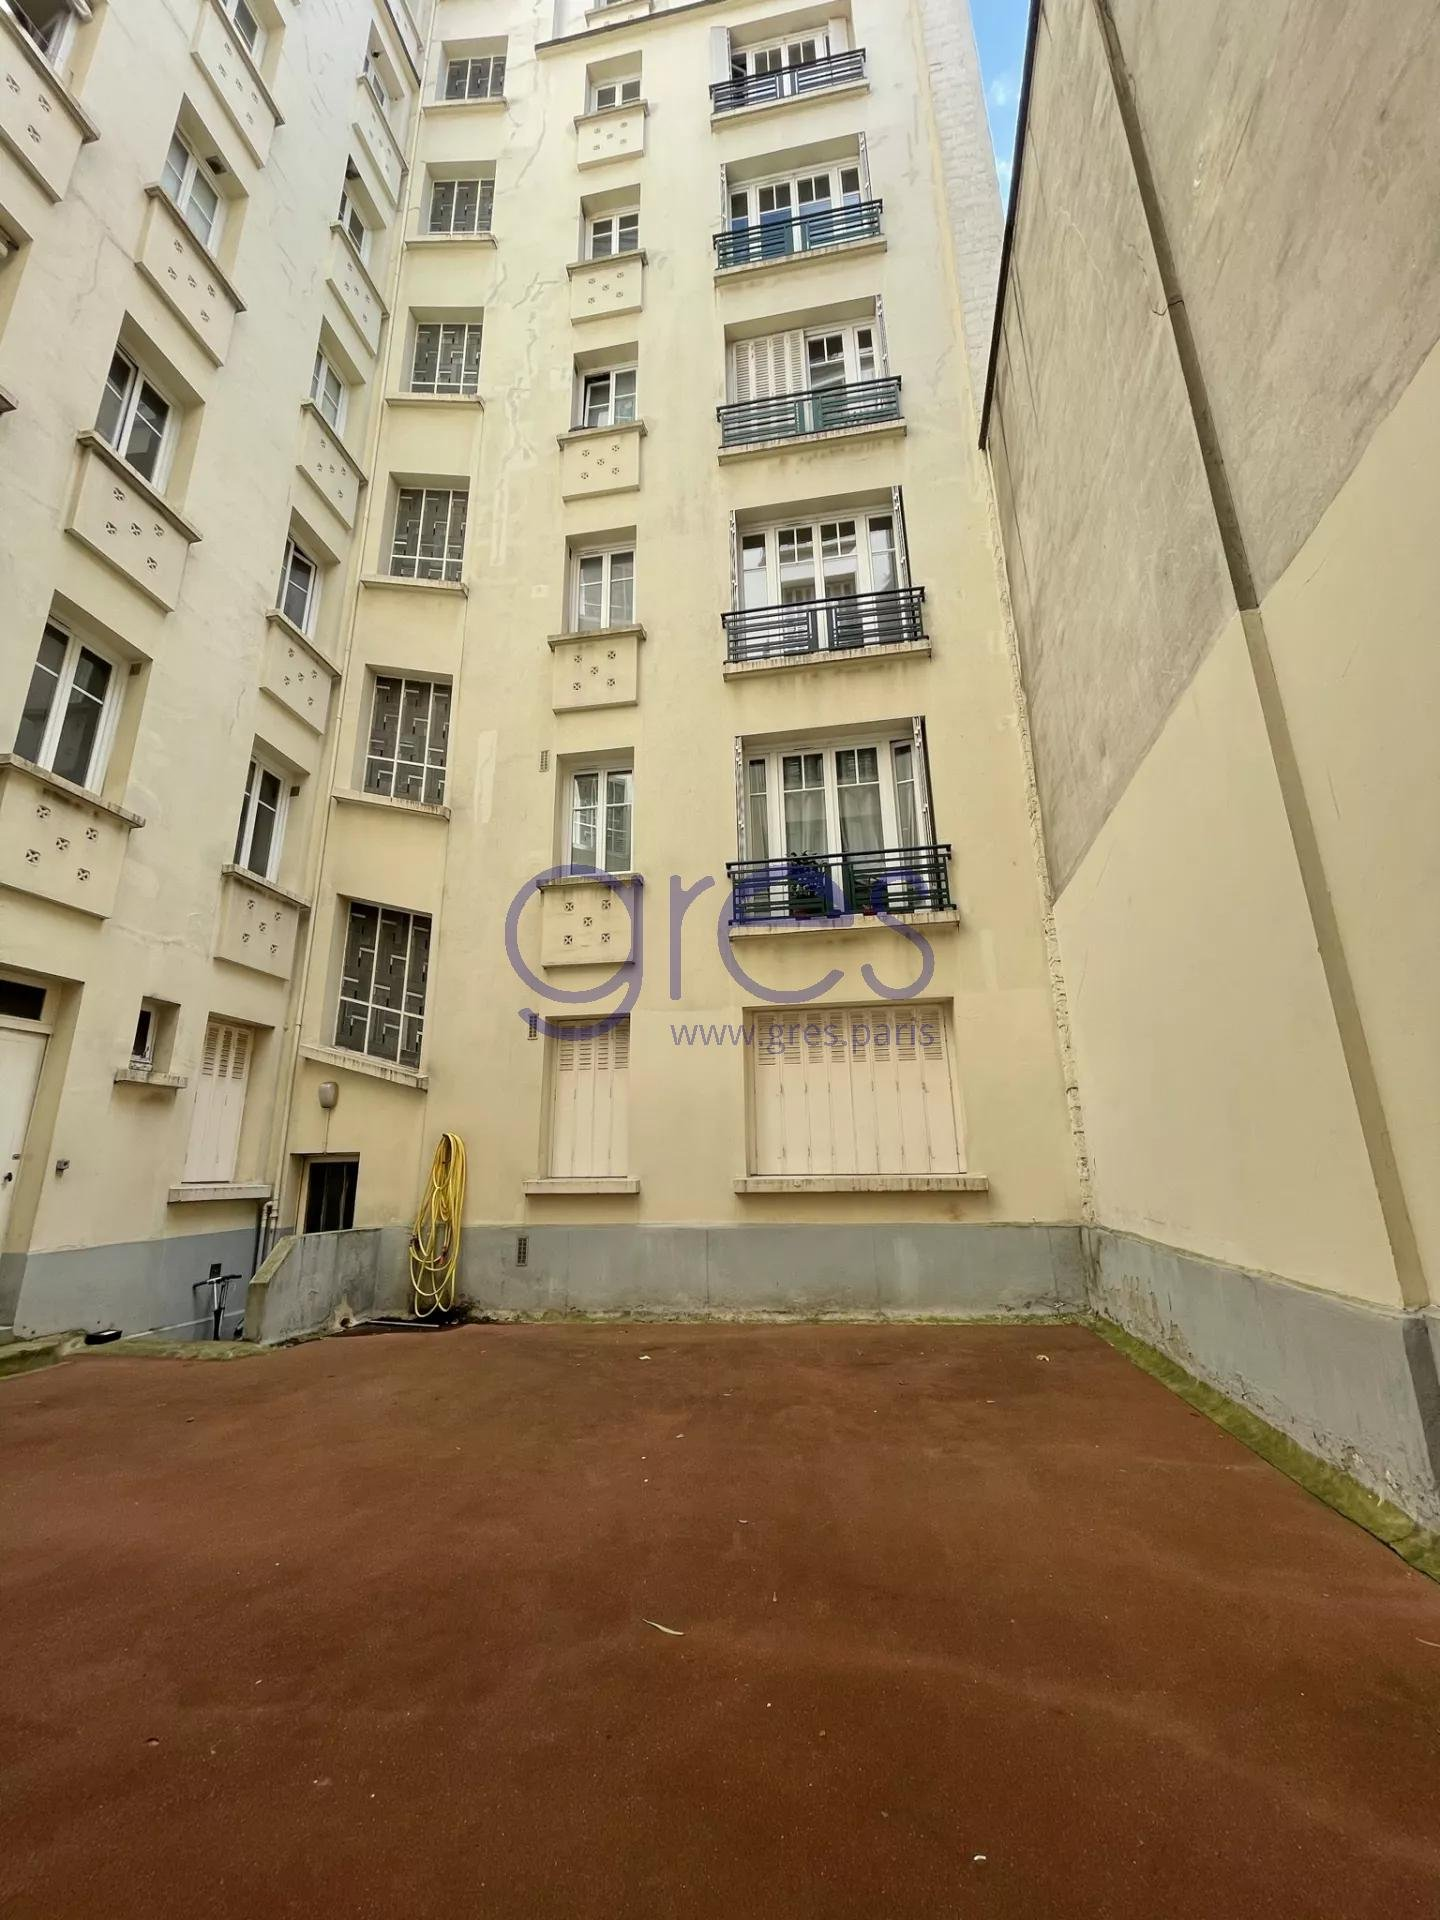 75007 PARIS ECOLE MILITAIRE LOCATION STUDIO VIDE